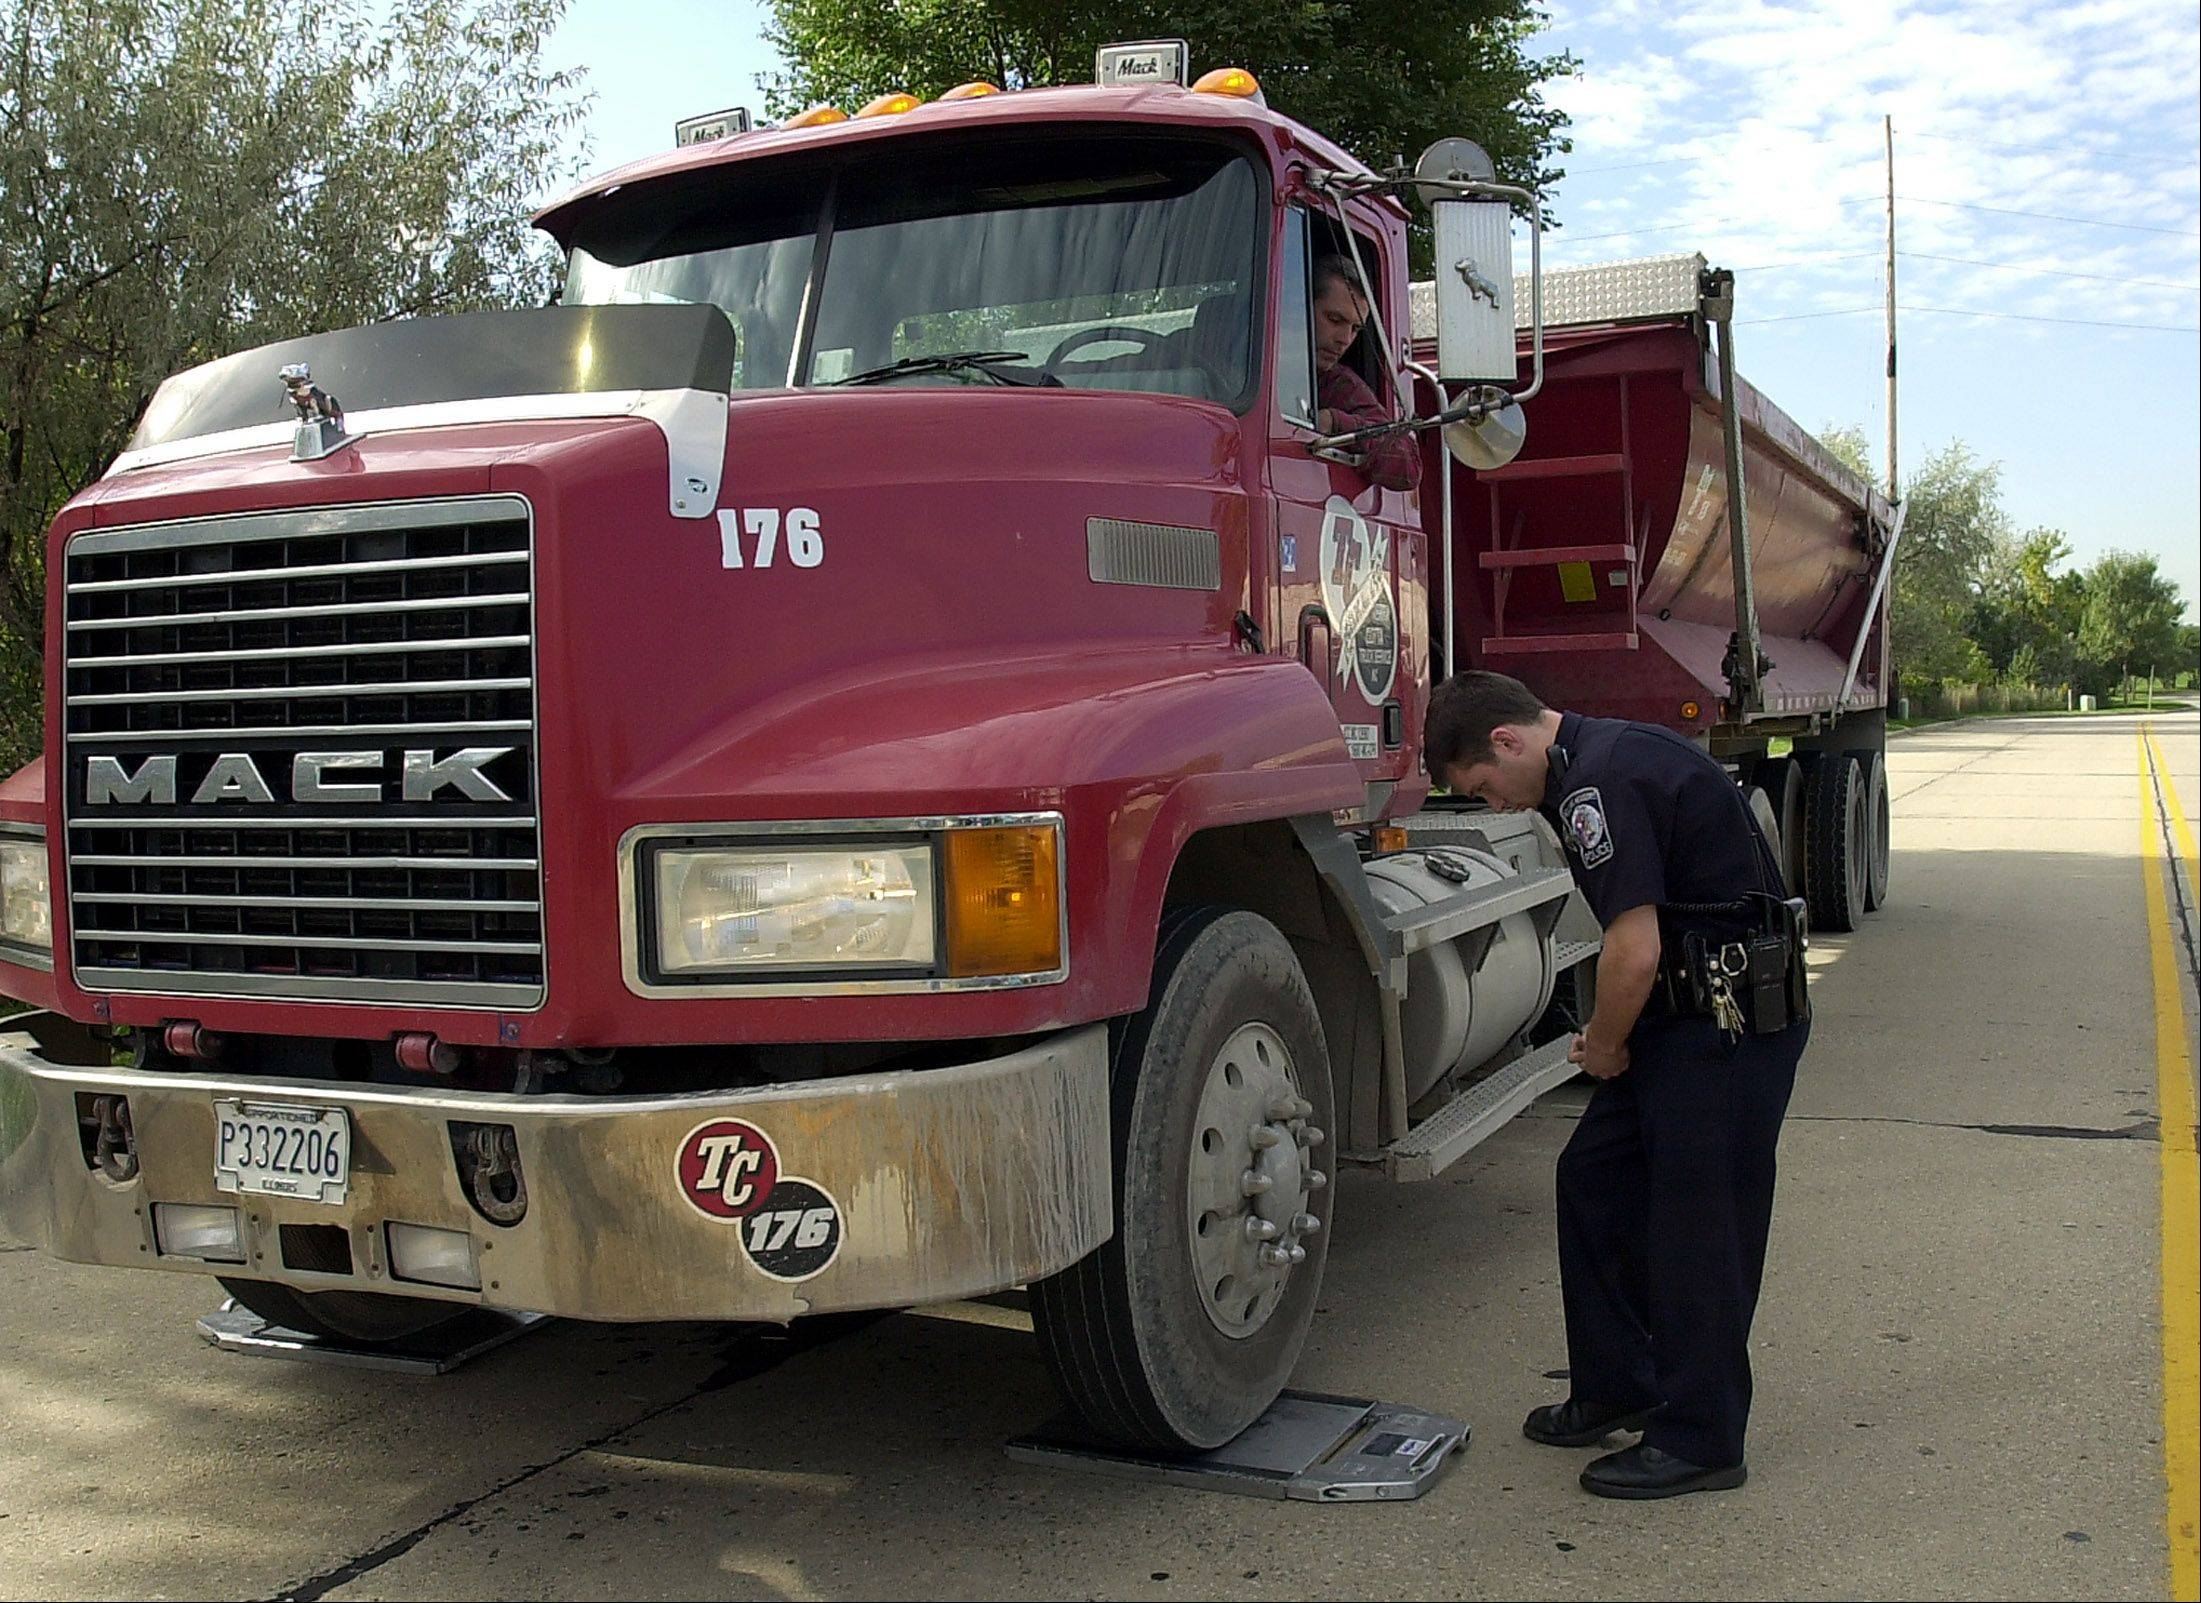 Some suburban police have serious reservations about legislation pending in Congress that would raise truck weight limits on interstate highways from 80,000 pounds to 97,000 pounds with an additional axle. Supporters say it would reduce trips, thereby saving gas and reducing traffic, but opponents argue it would be a safety hazard and worsen roadways.